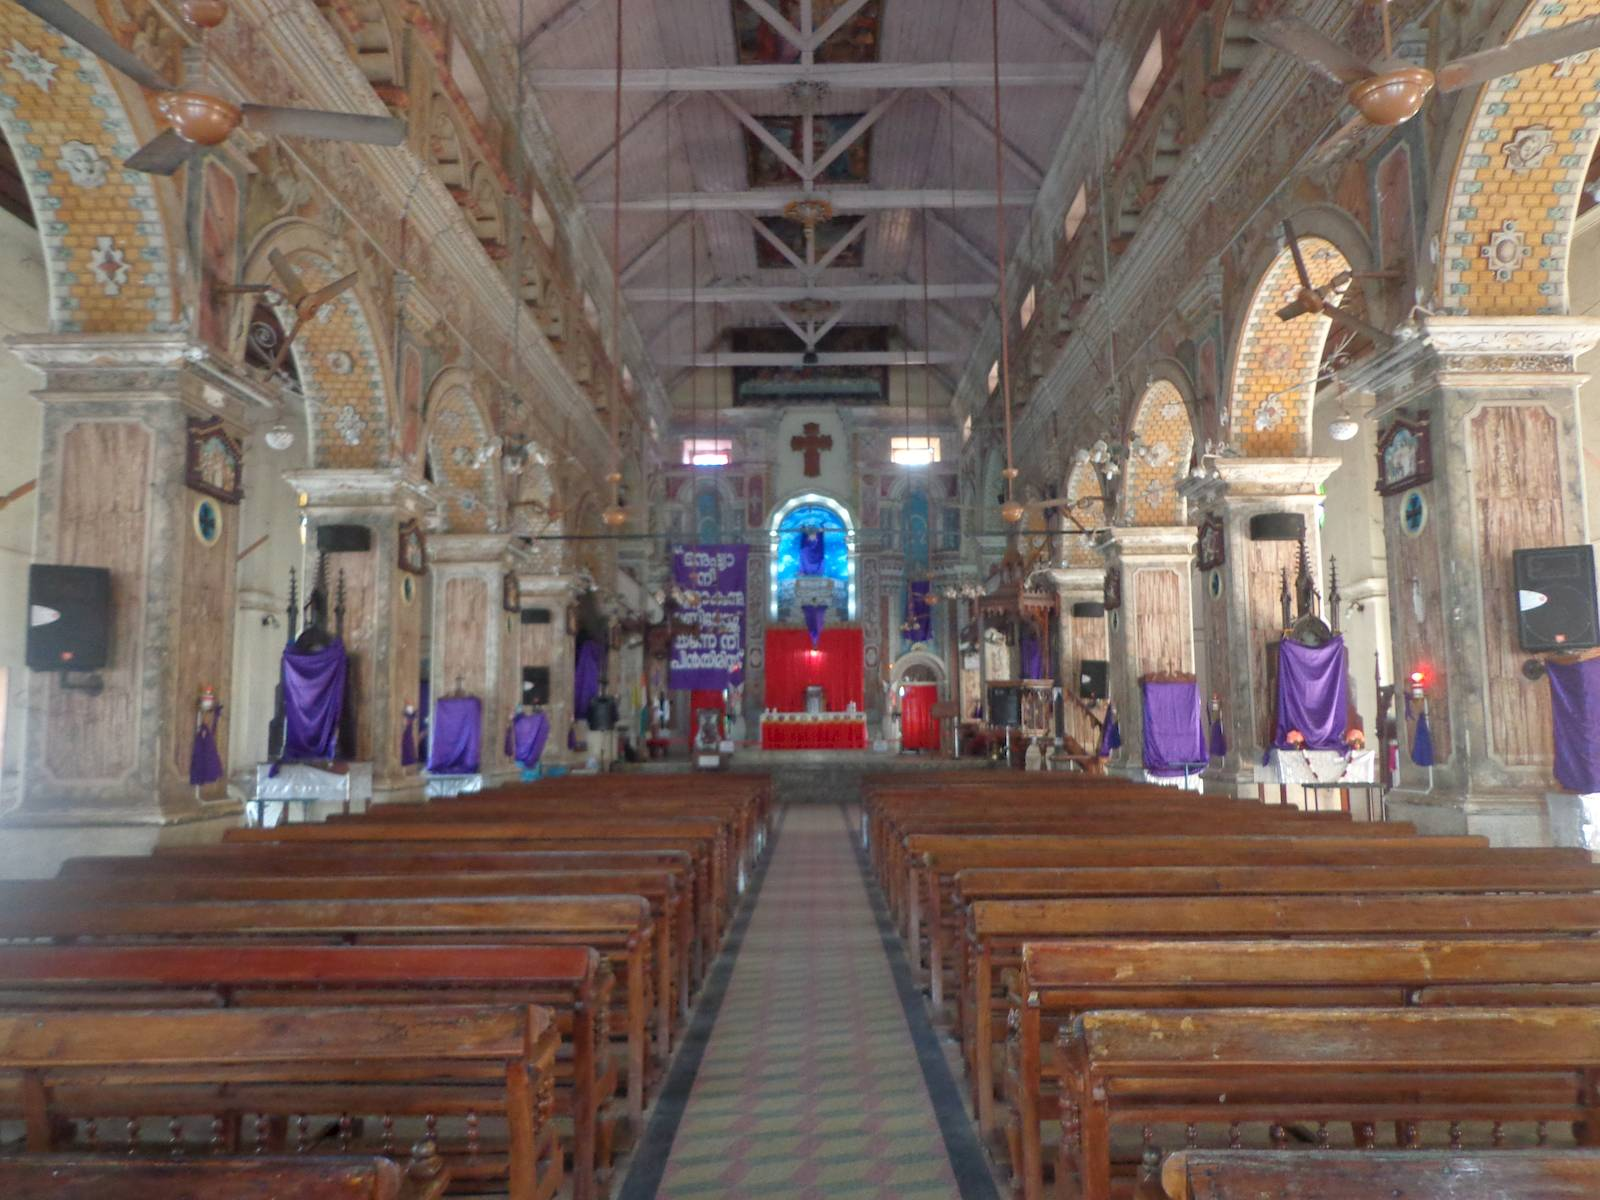 The inside of the basilica.